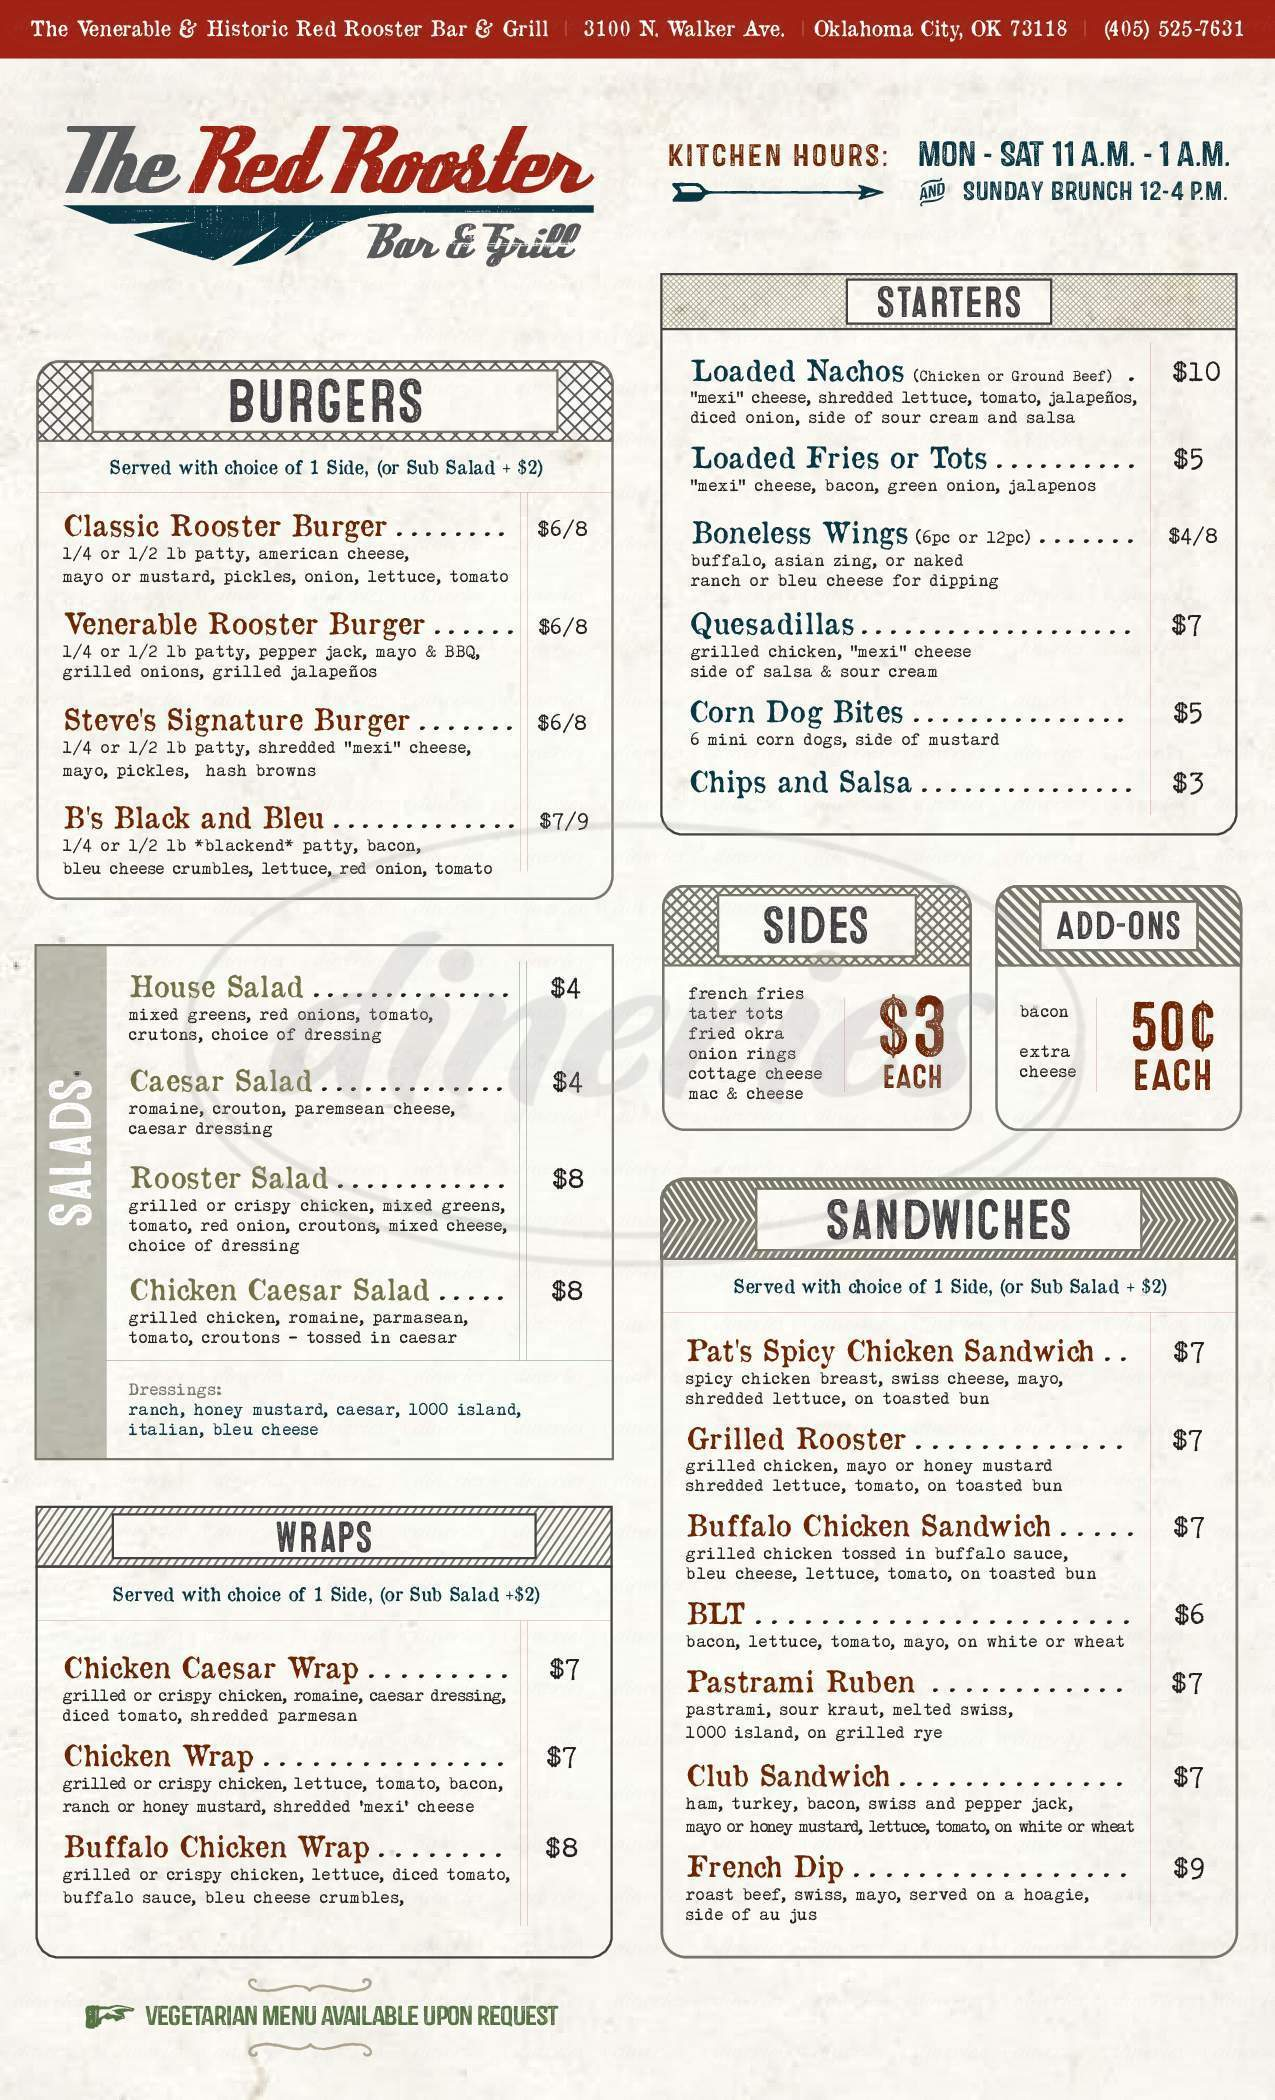 menu for Red Rooster Bar & Grill